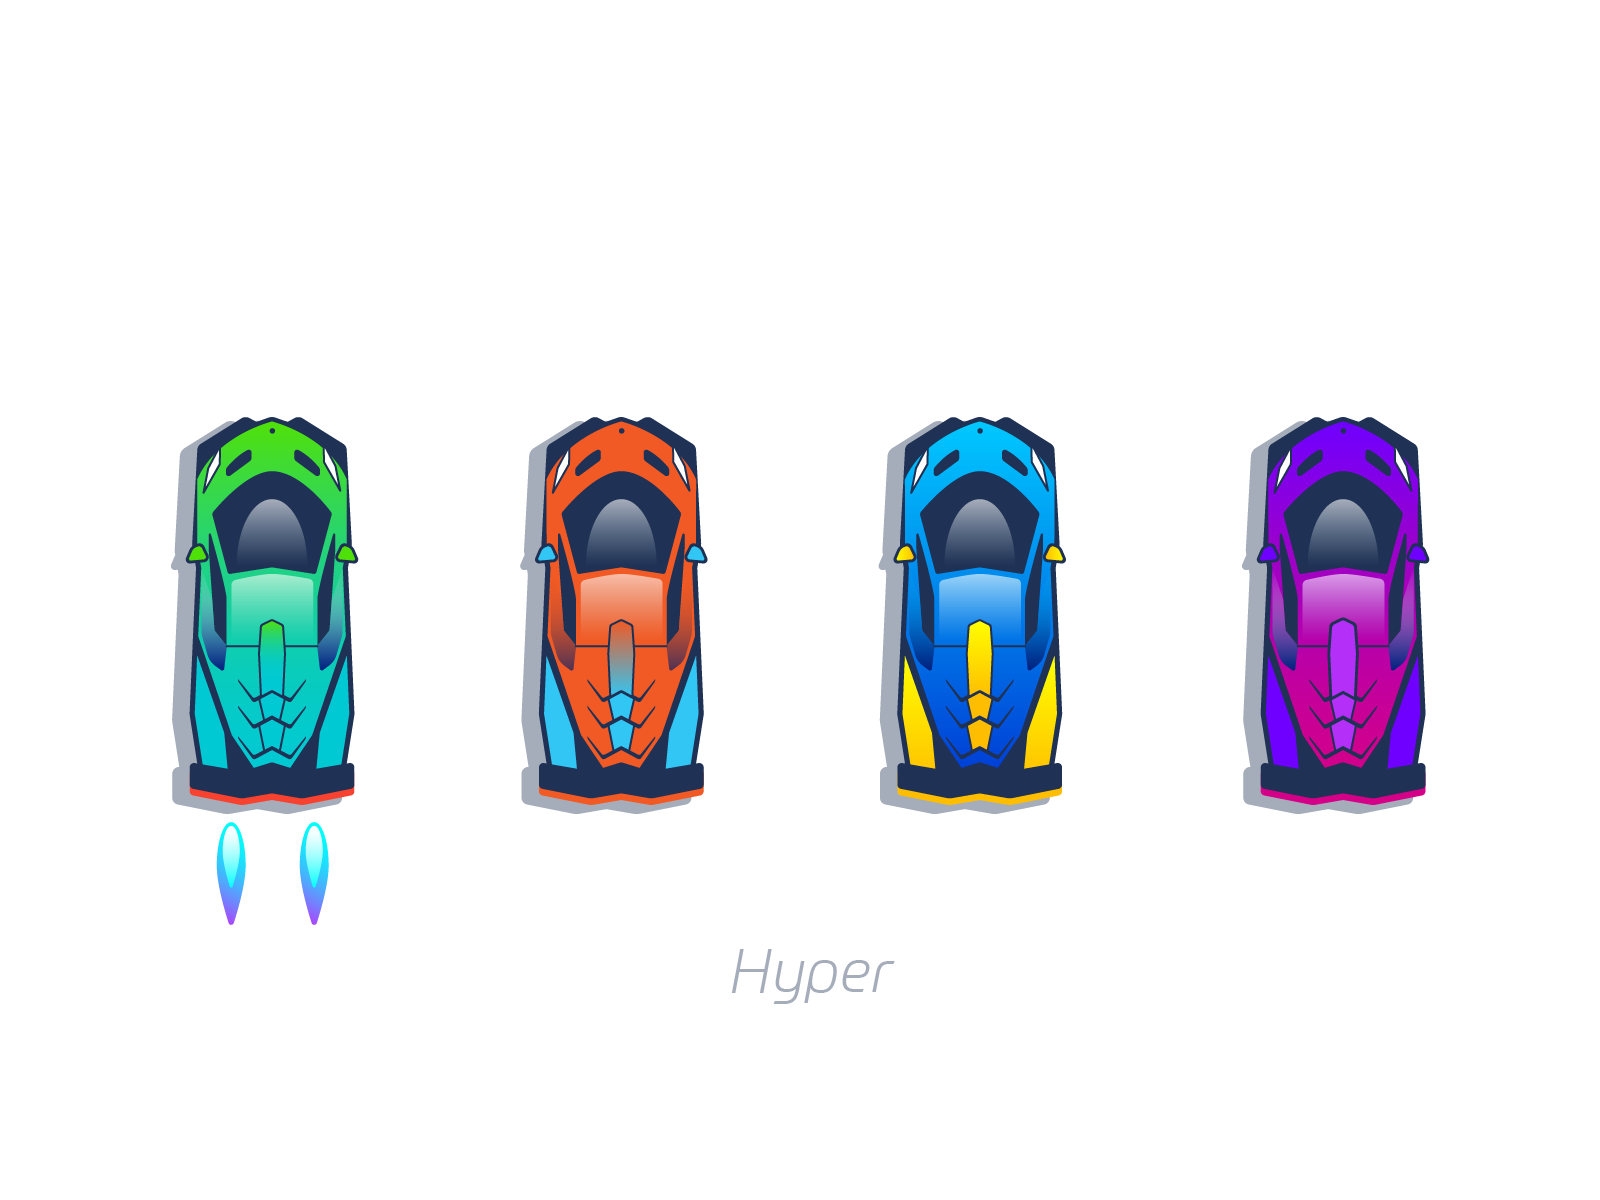 Hyper cars mobile design graphics